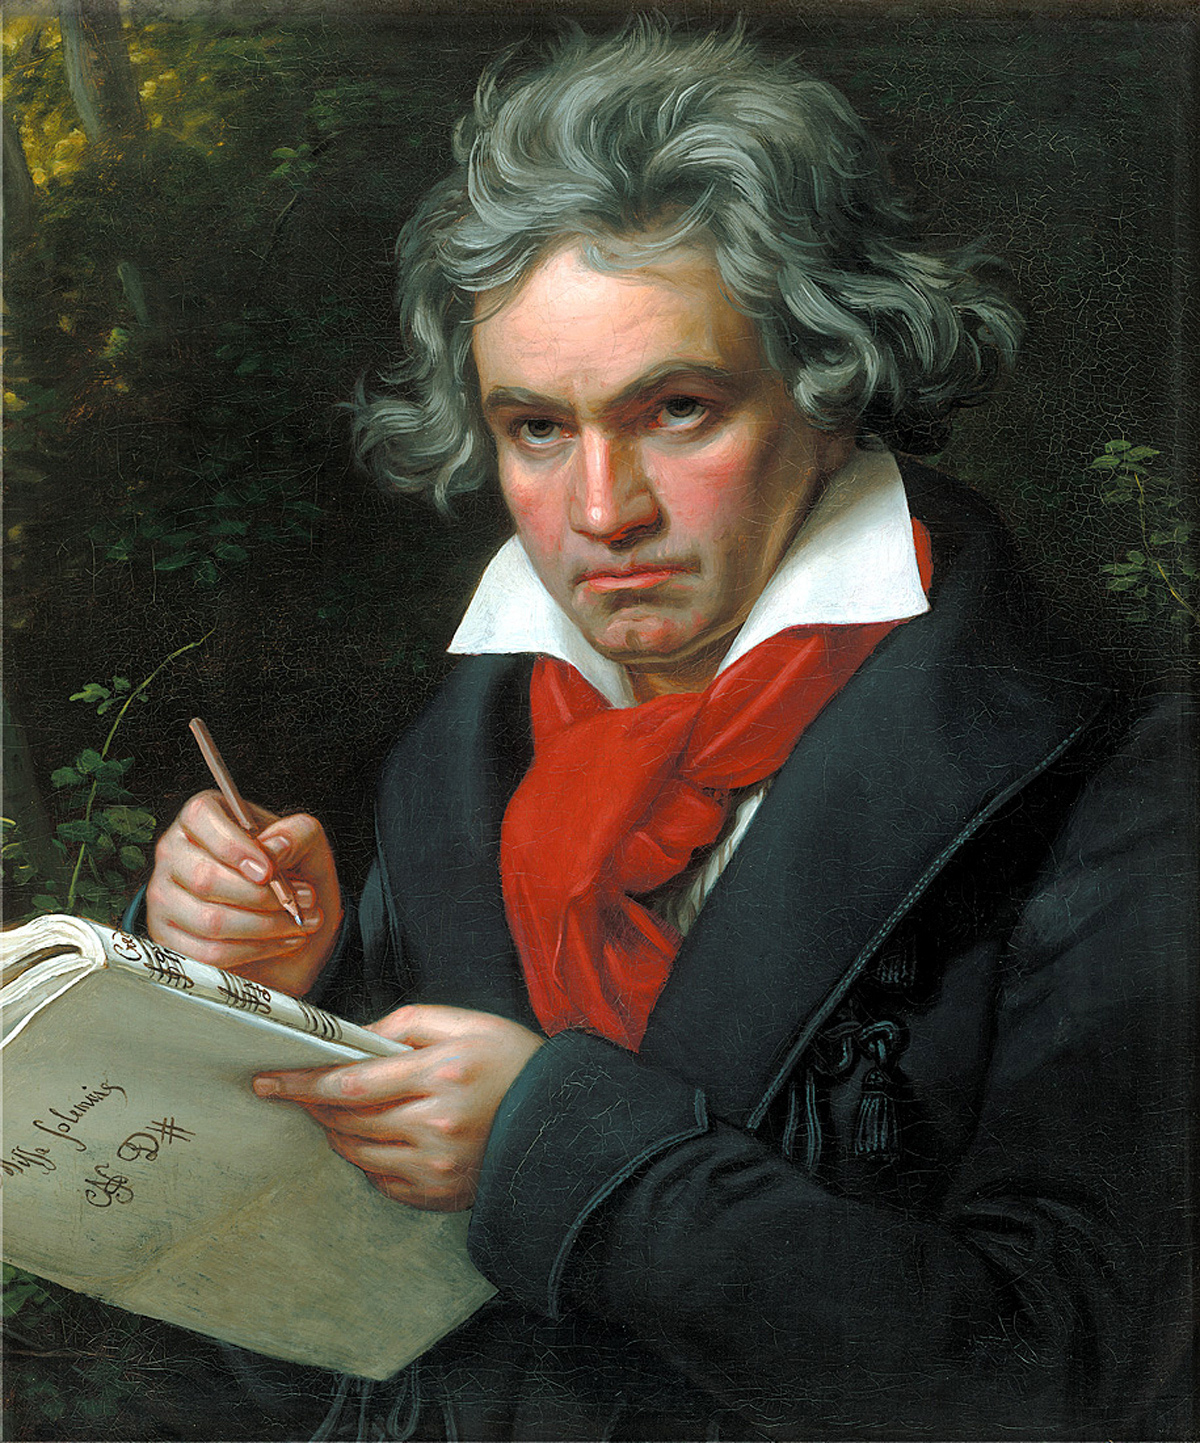 http://upload.wikimedia.org/wikipedia/commons/6/6f/Beethoven.jpg